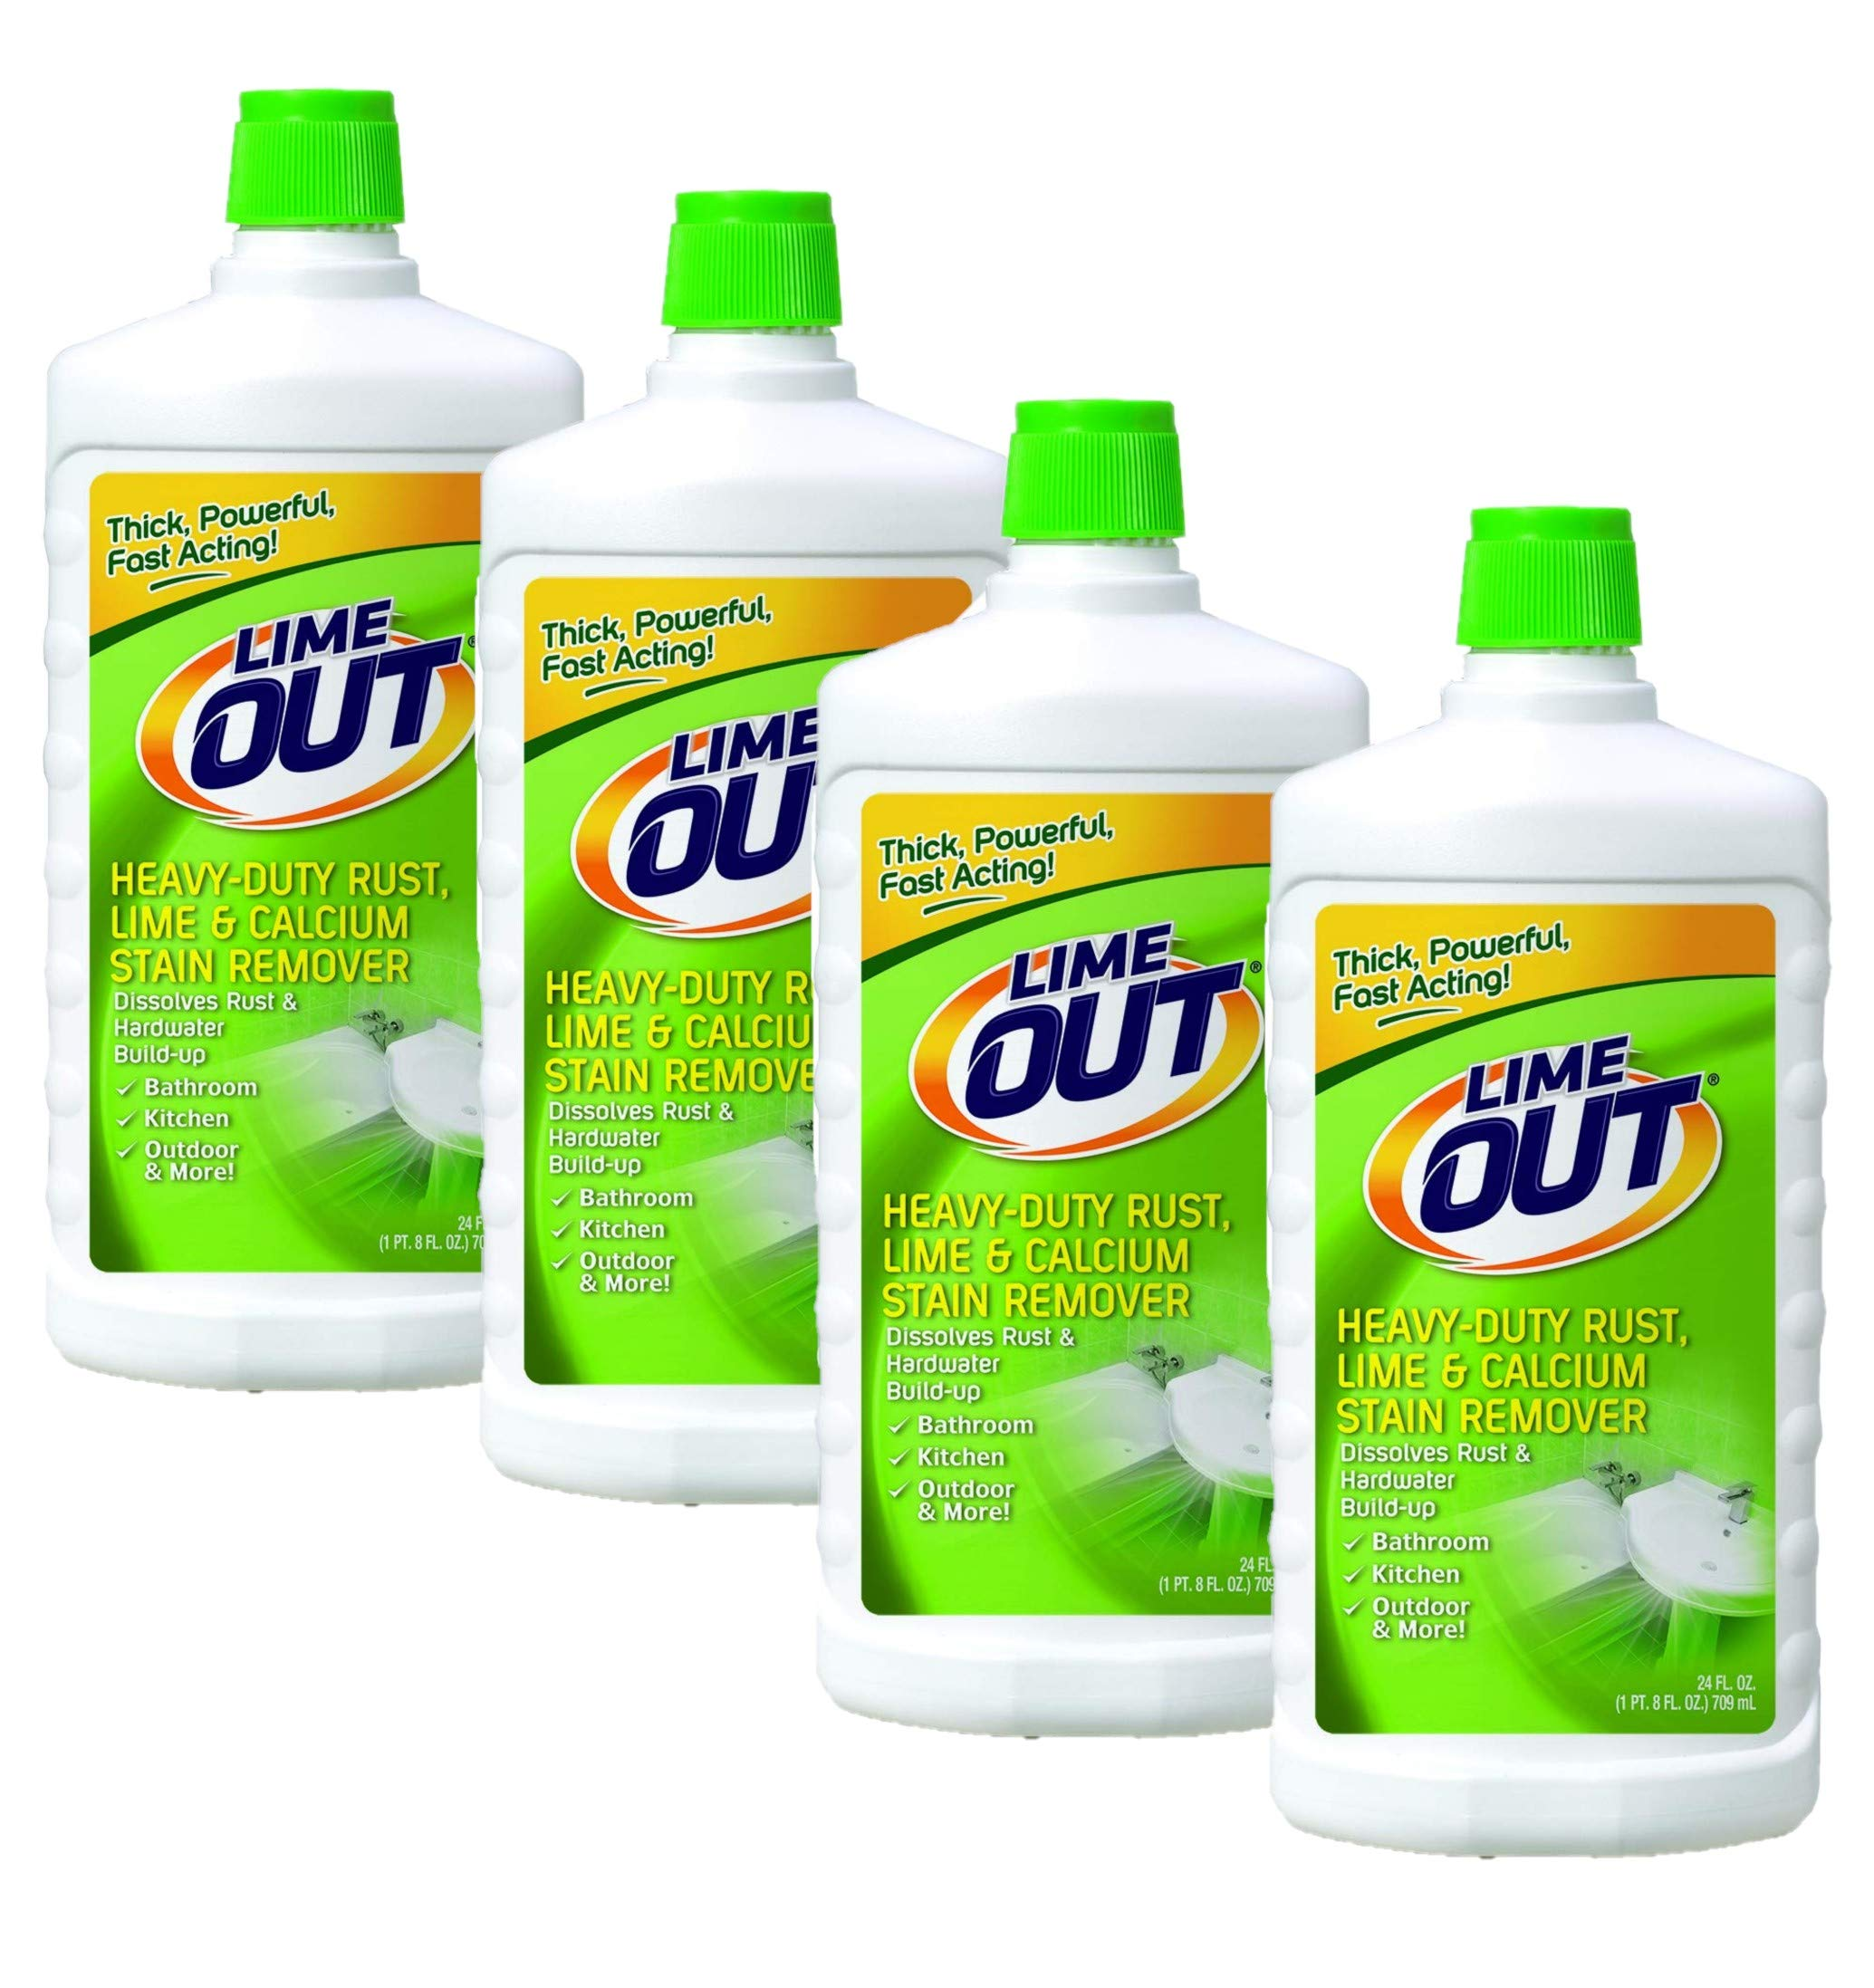 Lime Out Heavy-Duty Rust, Lime & Calcium Stain Remover, 24 Fl. Oz. Bottle, Pack of 4 by Summit Brands